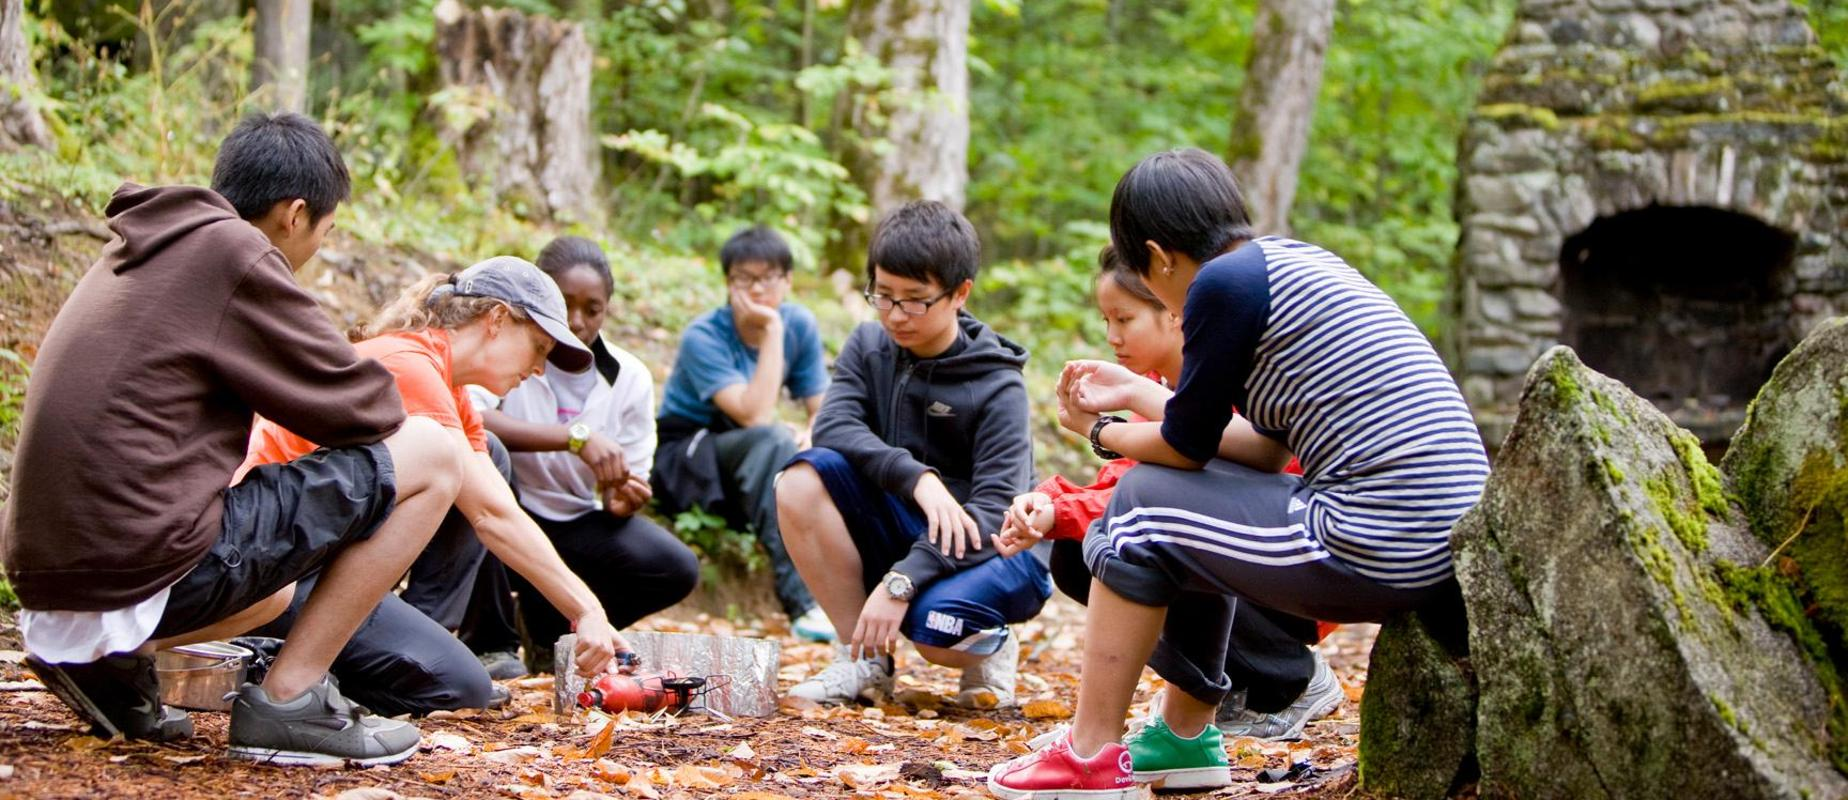 A faculty member shows students how to start a campfire.